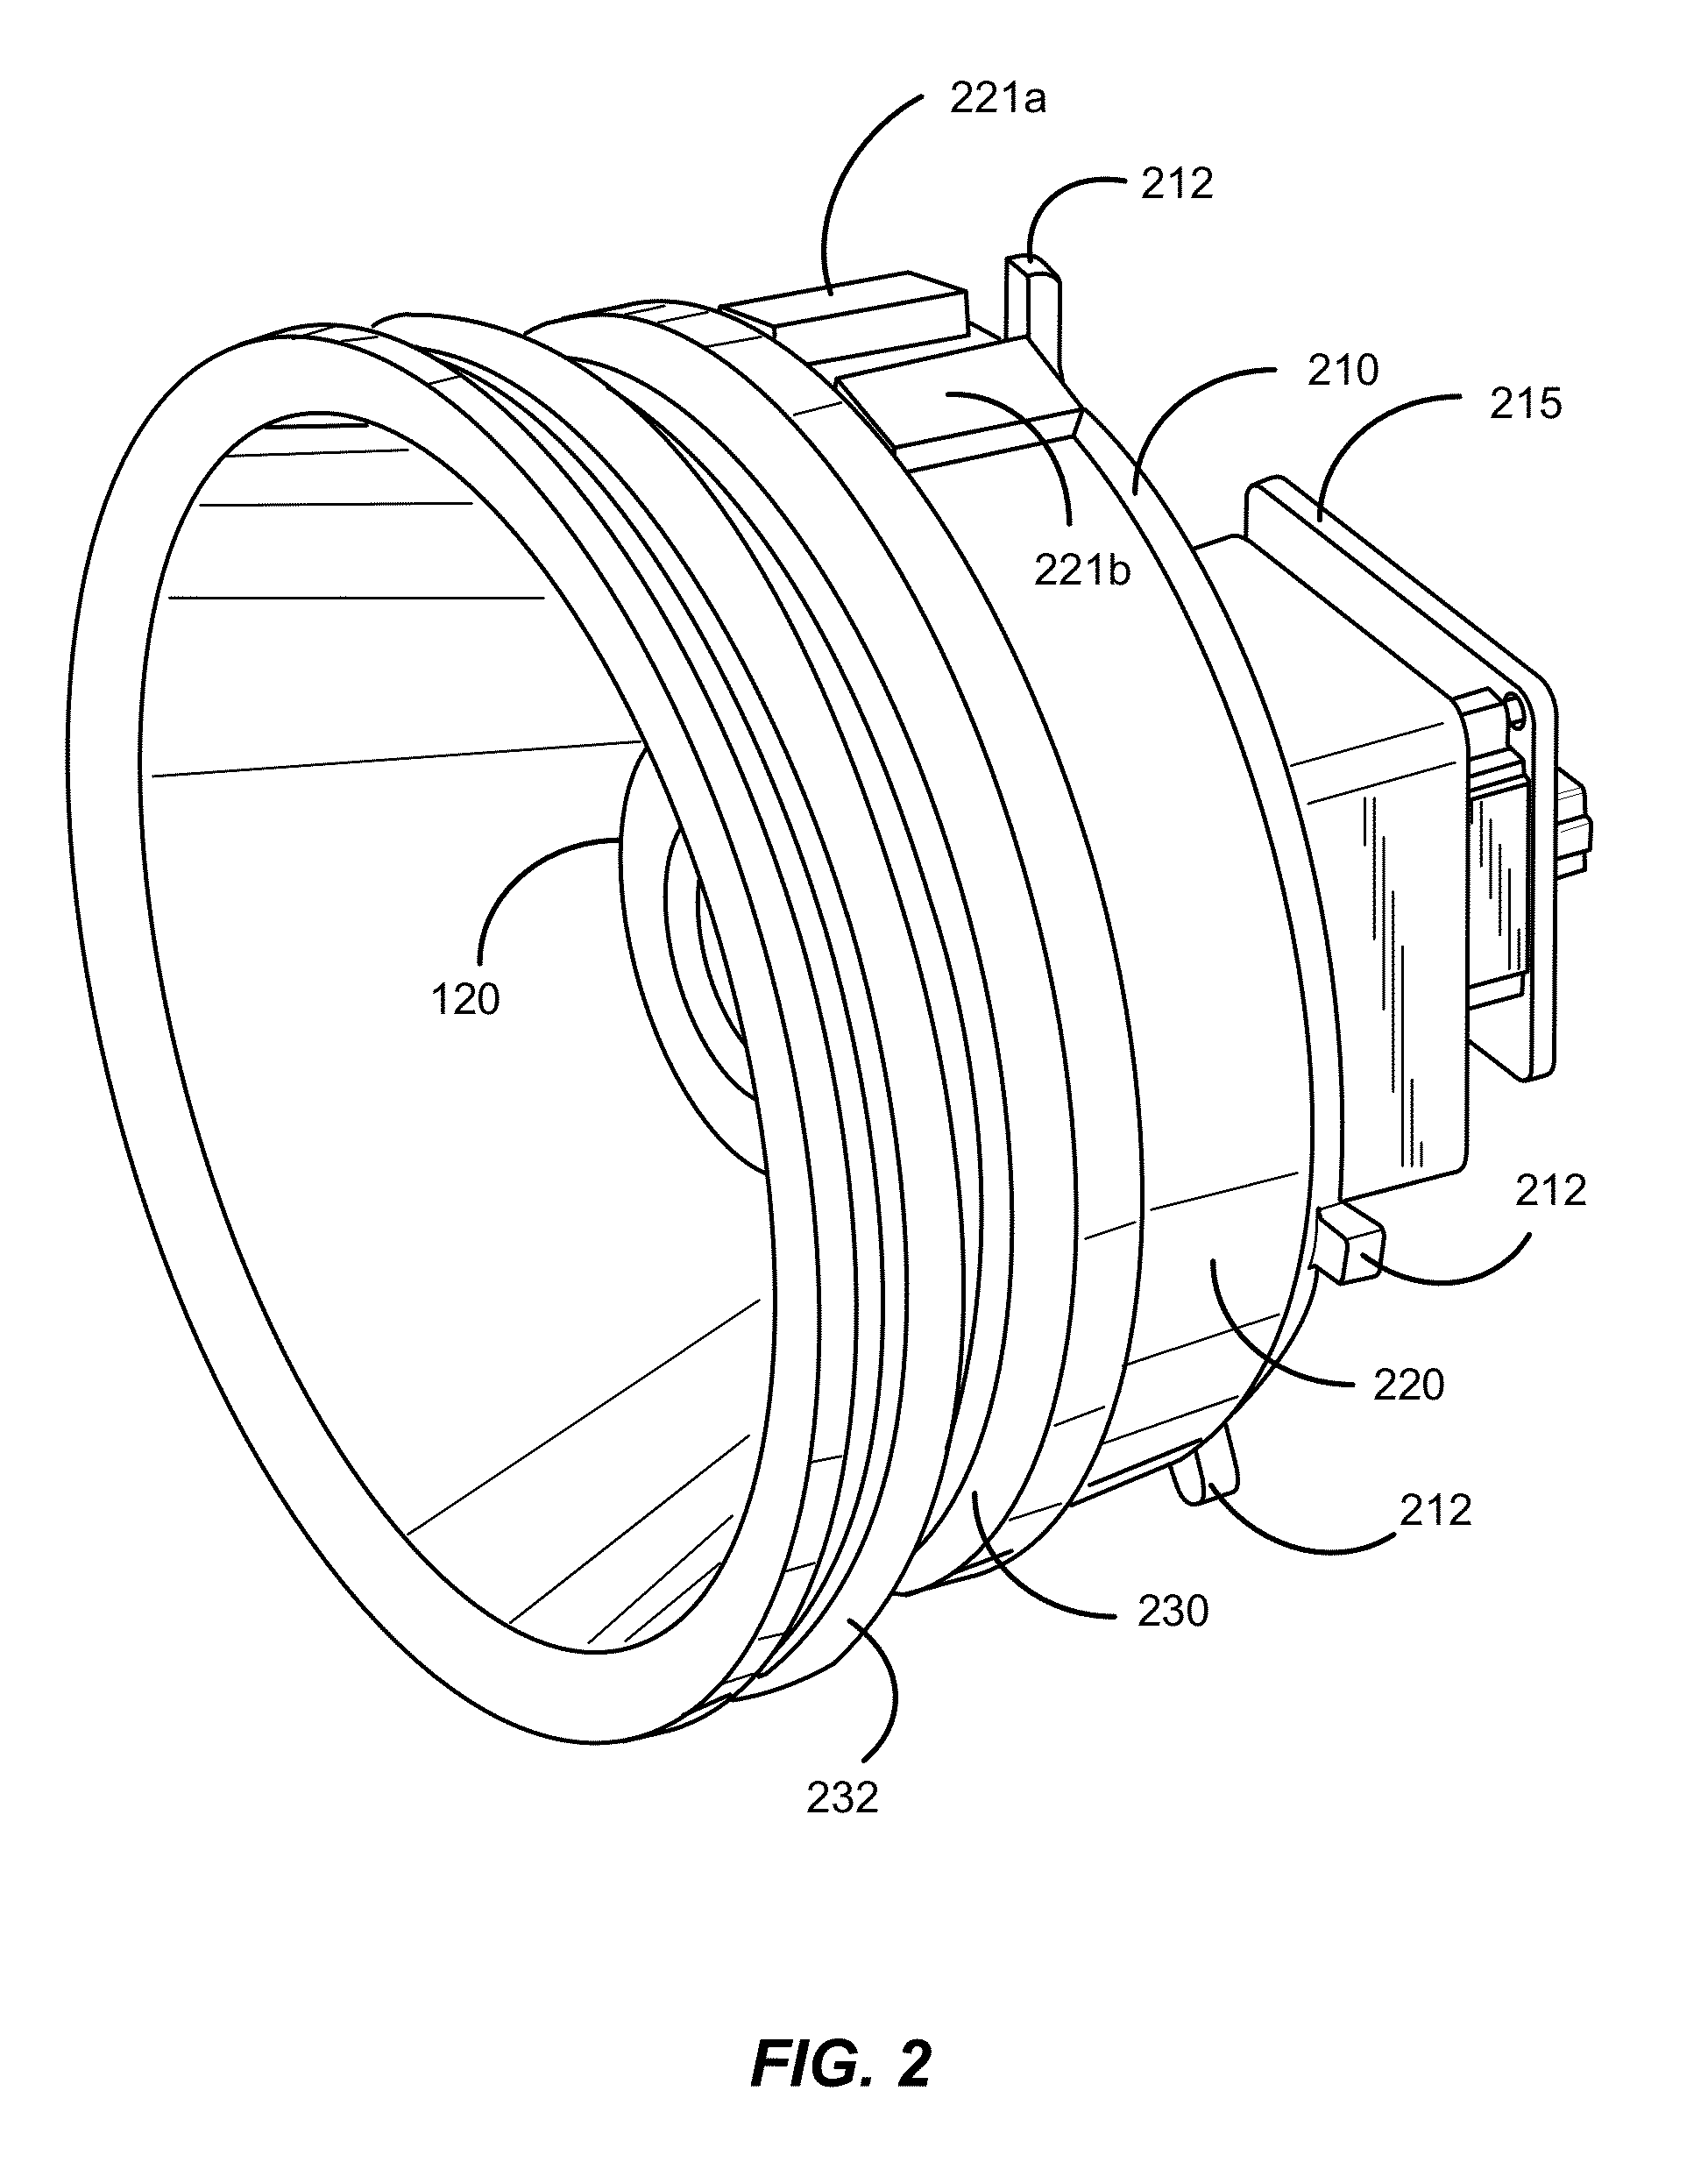 brevet us20130070102 thermal isolation device for infrared IP Camera Wiring Diagram patent drawing